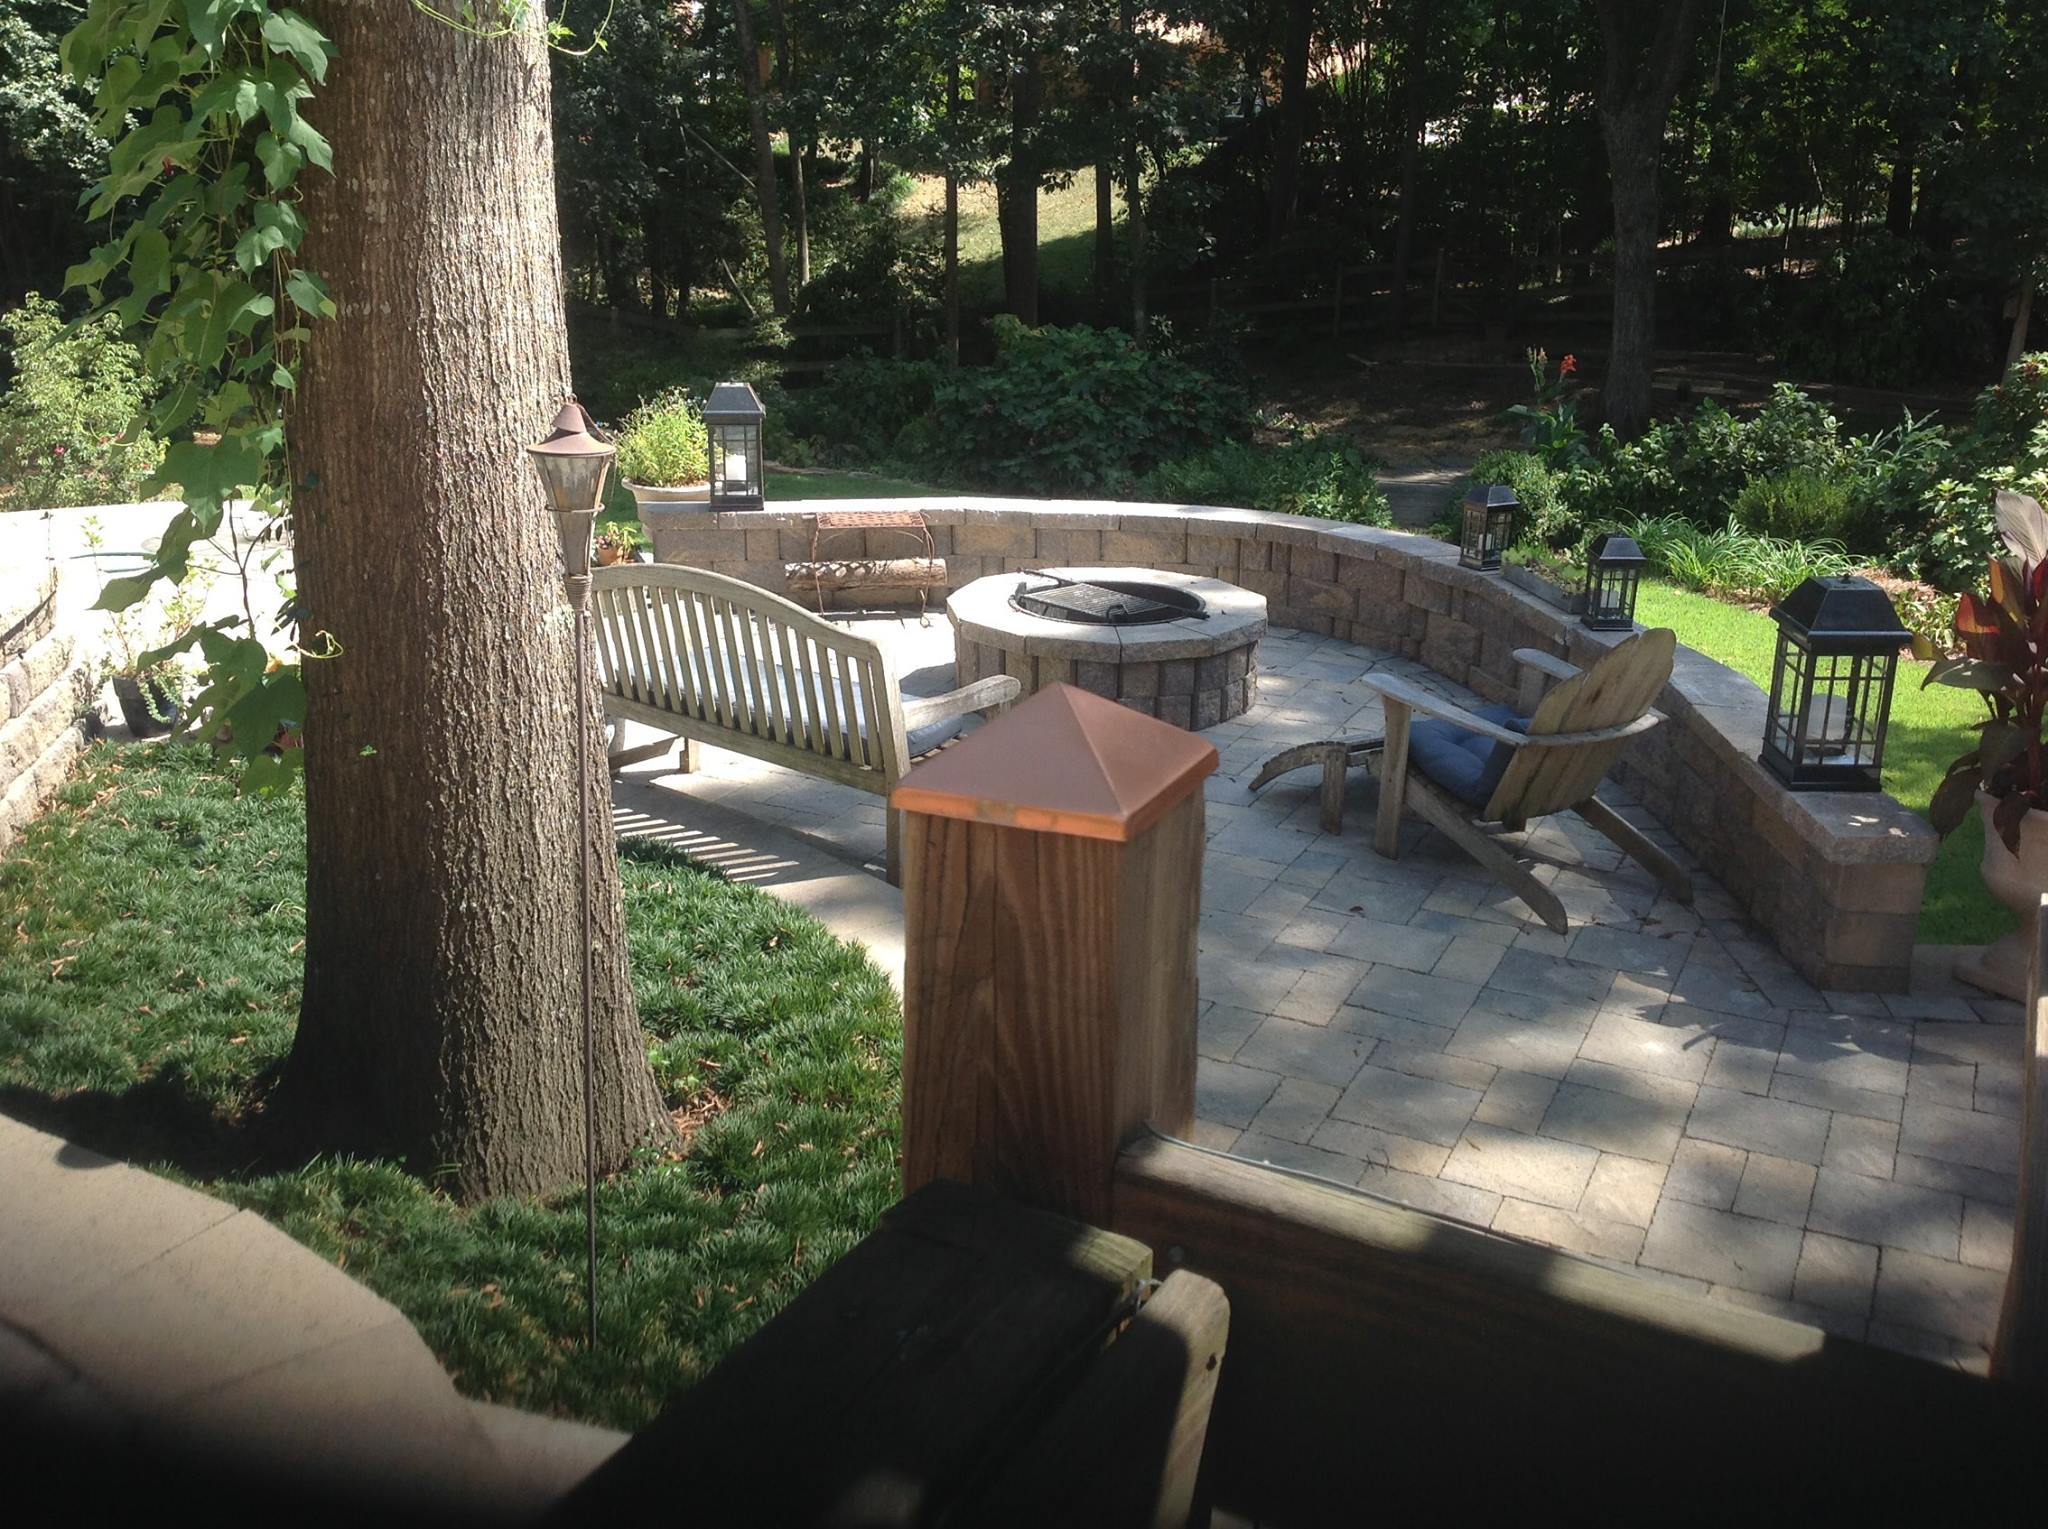 Top landscapers in charlotte nc - Fire Pit 2